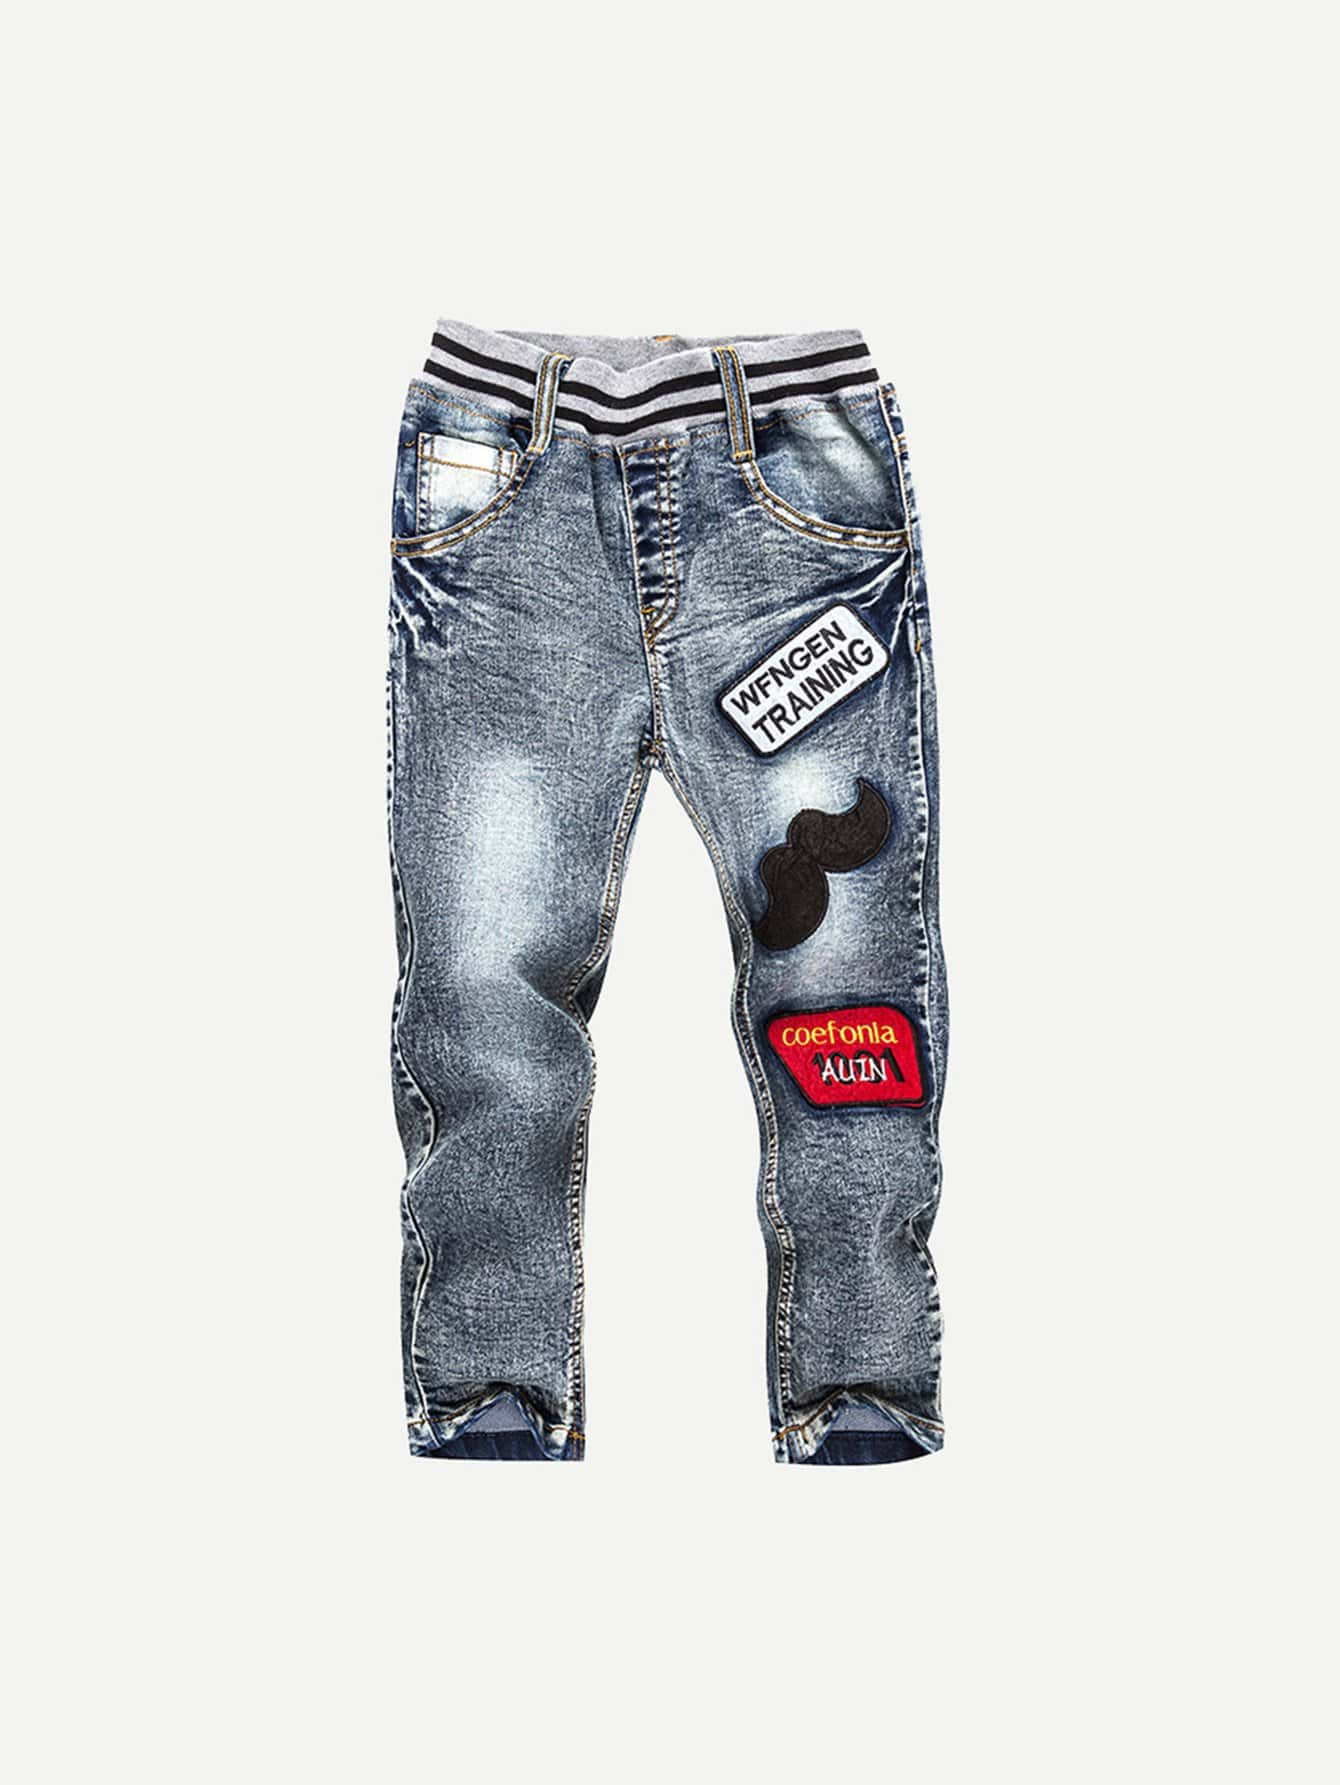 Boys Embroidered Patch Bleach Wash Jeans kids embroidered jeans